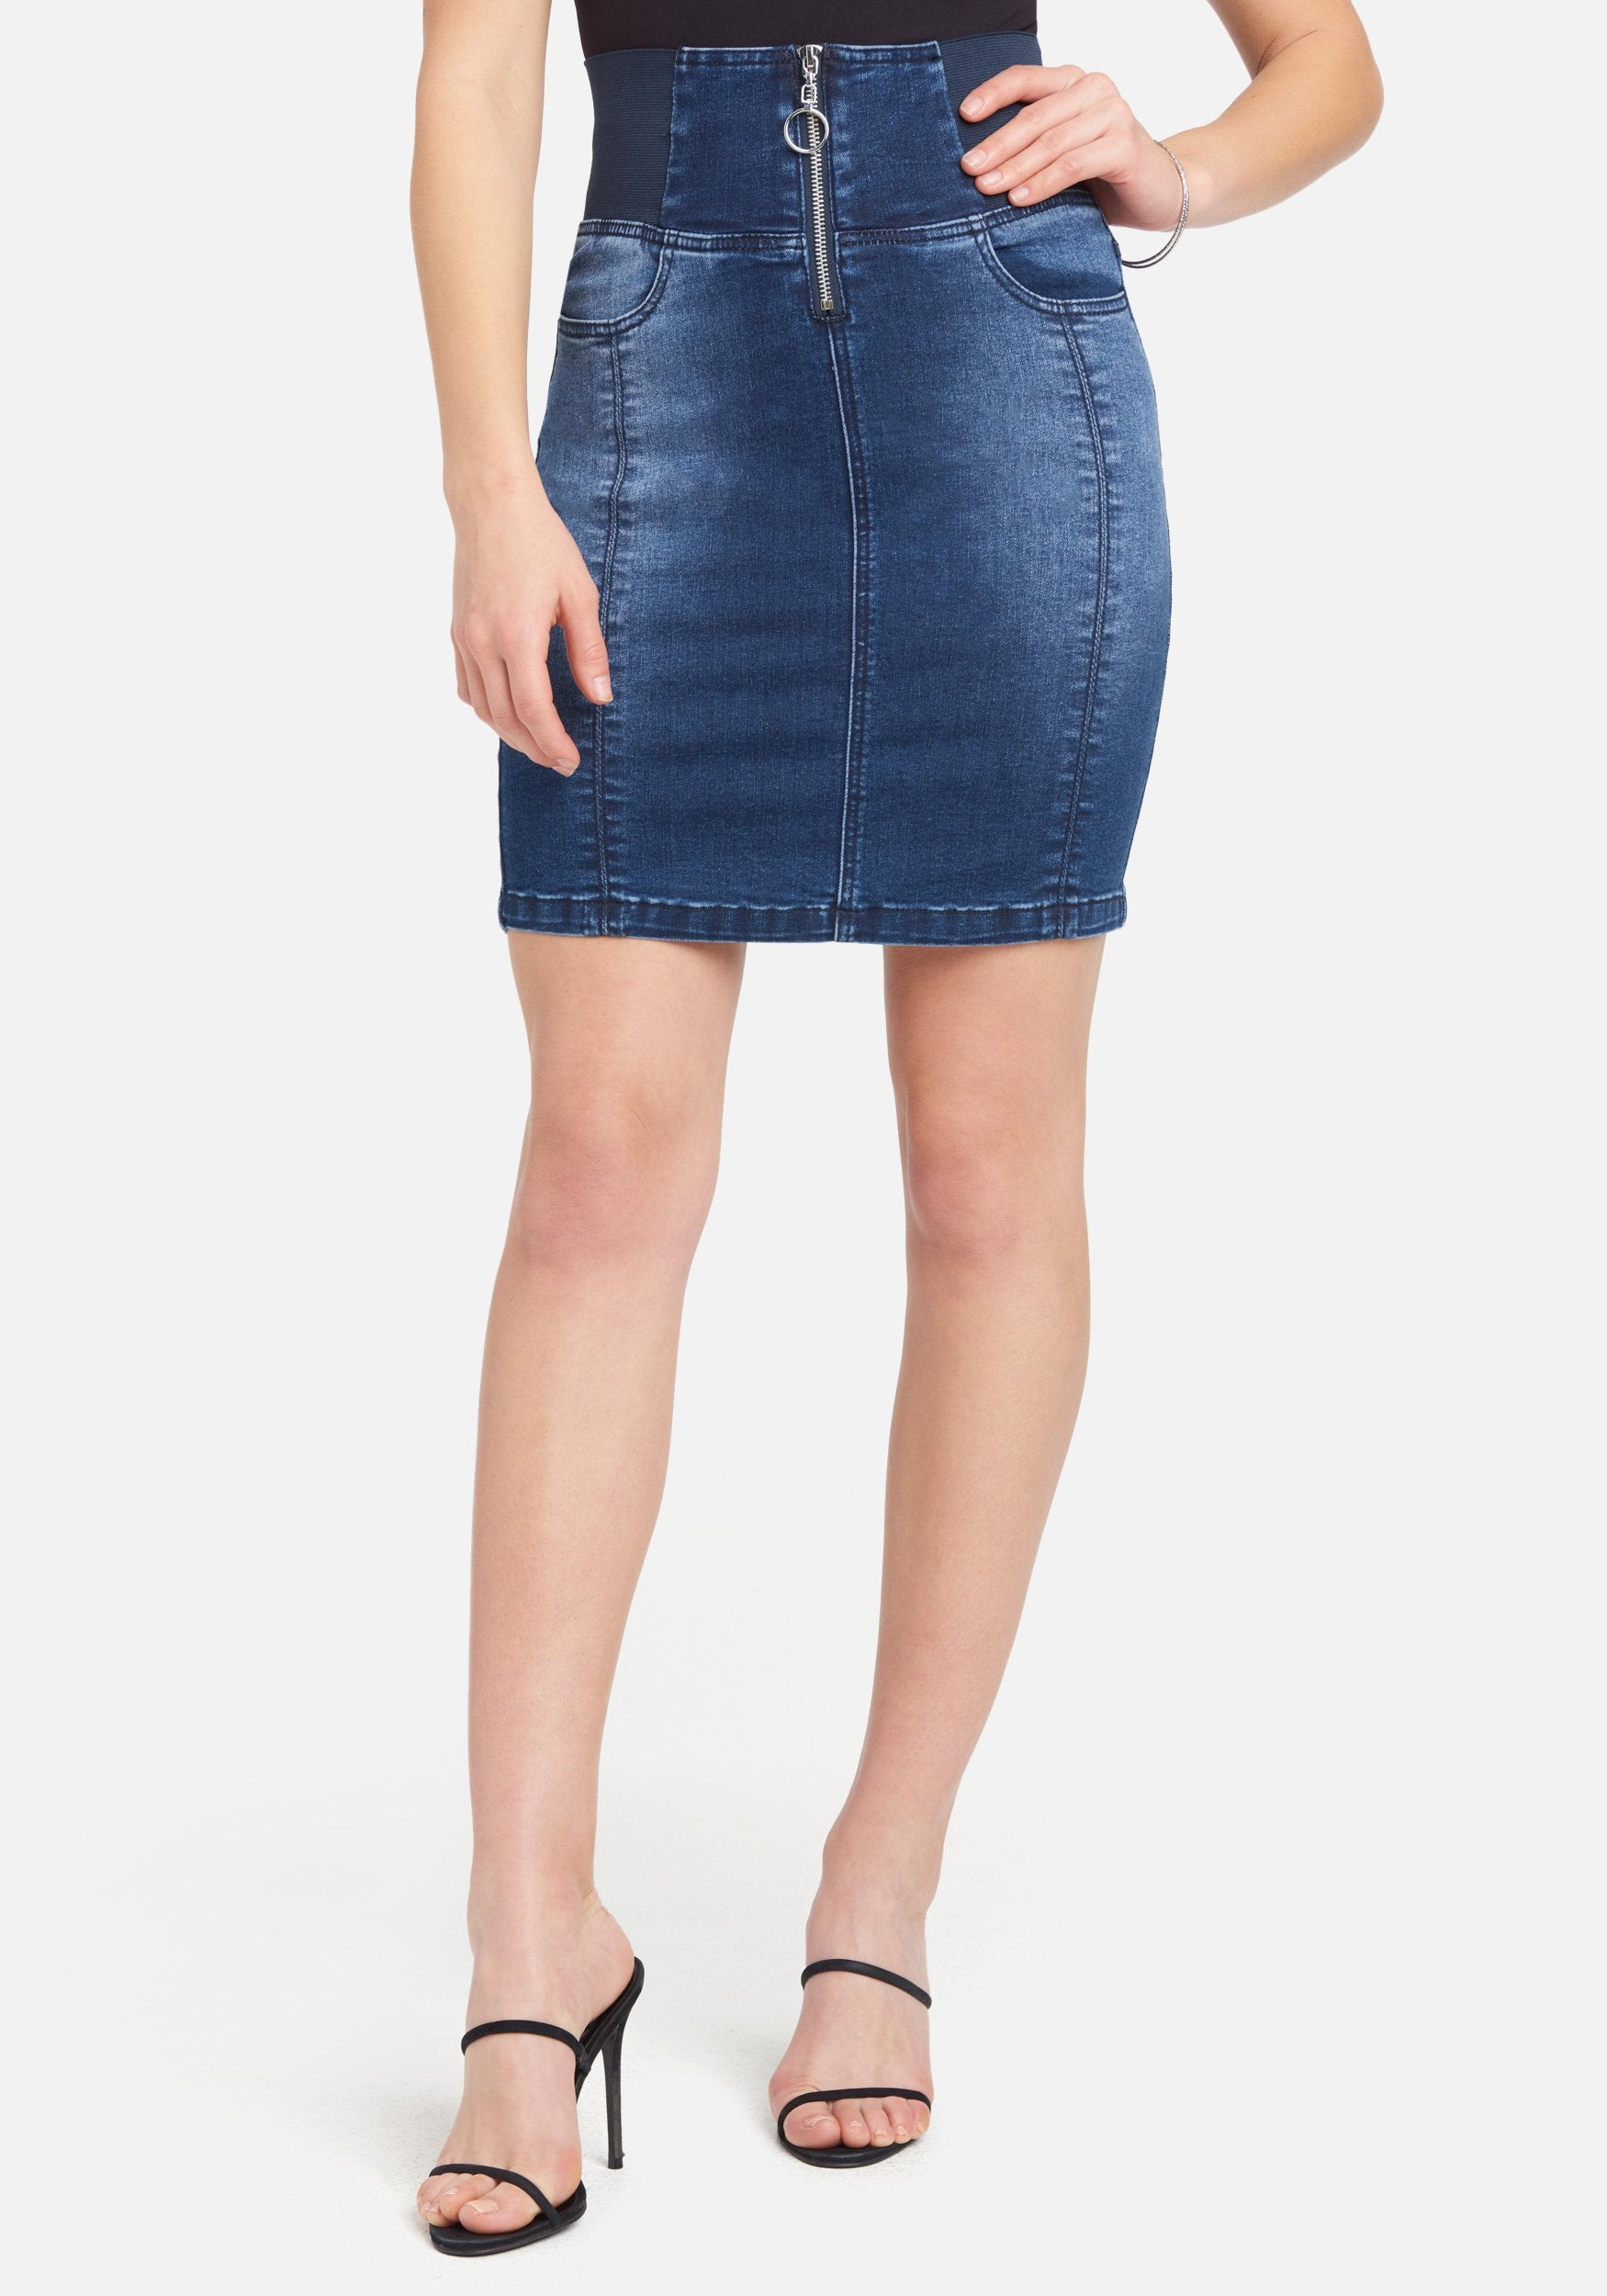 Bebe Women's Elastic High Waist Jean Skirt, Size 25 in Med Indigo Wash Cotton/Spandex